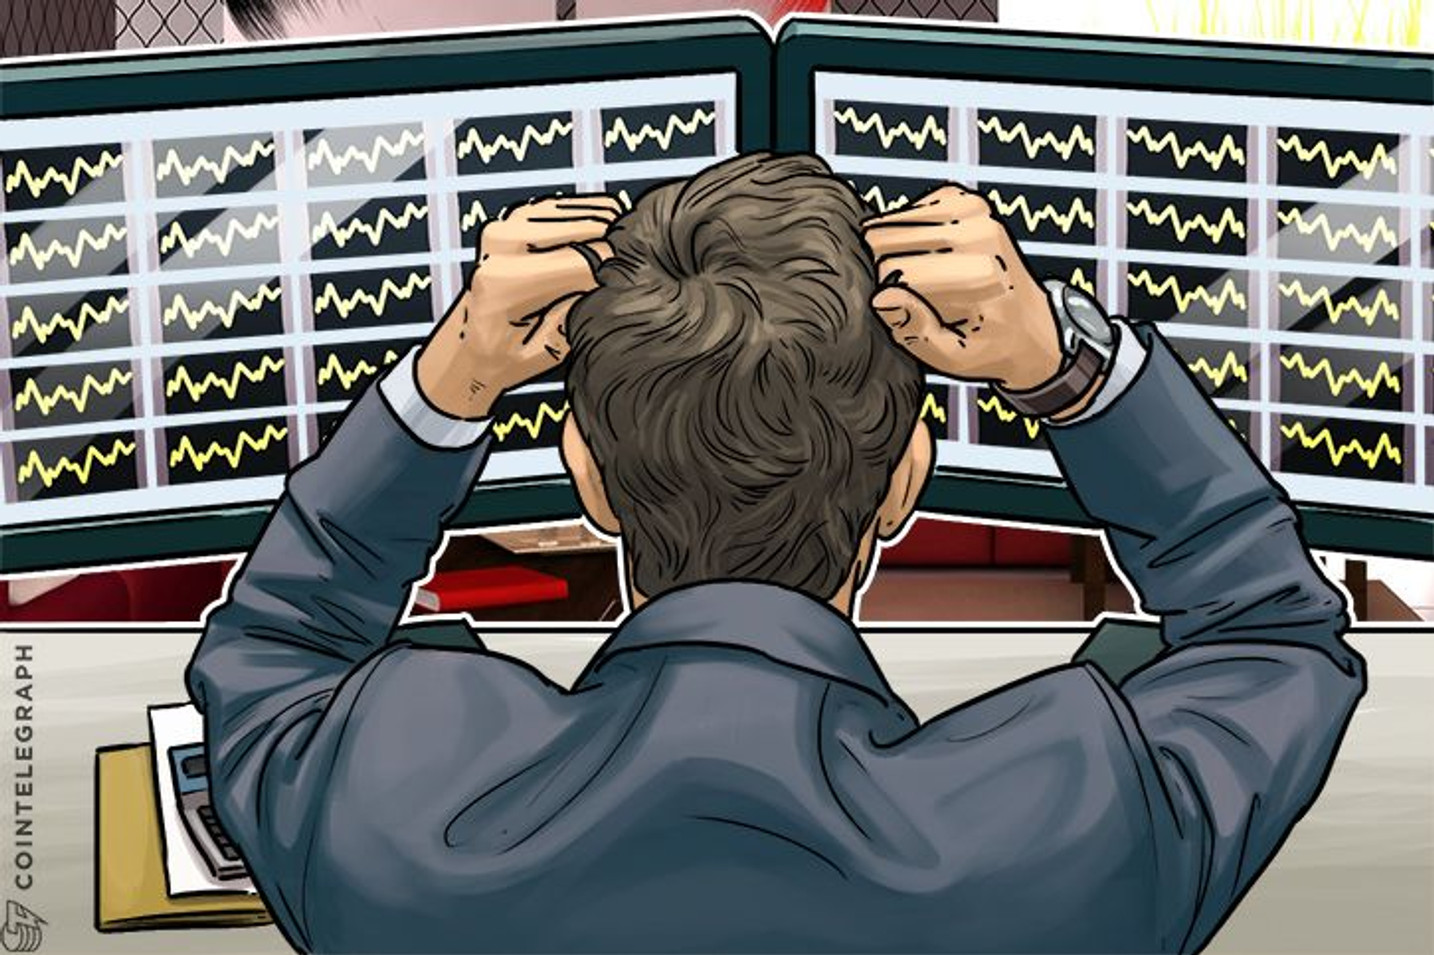 Bitcoin and Altcoins Pull Back From Psychologically Challenging Levels